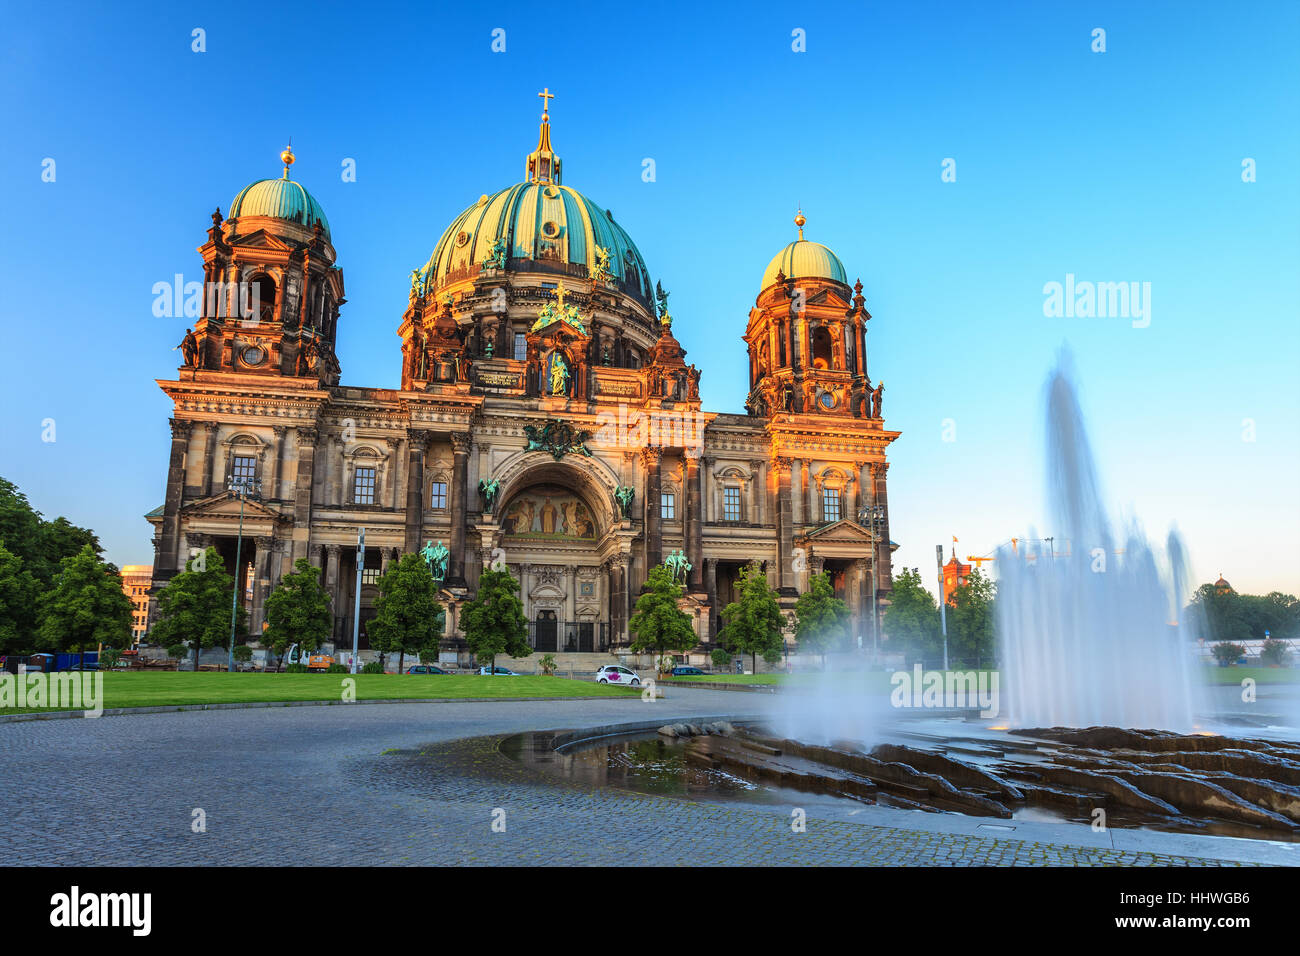 Berlin Cathedral or Berliner Dom, Berlin, Germany - Stock Image